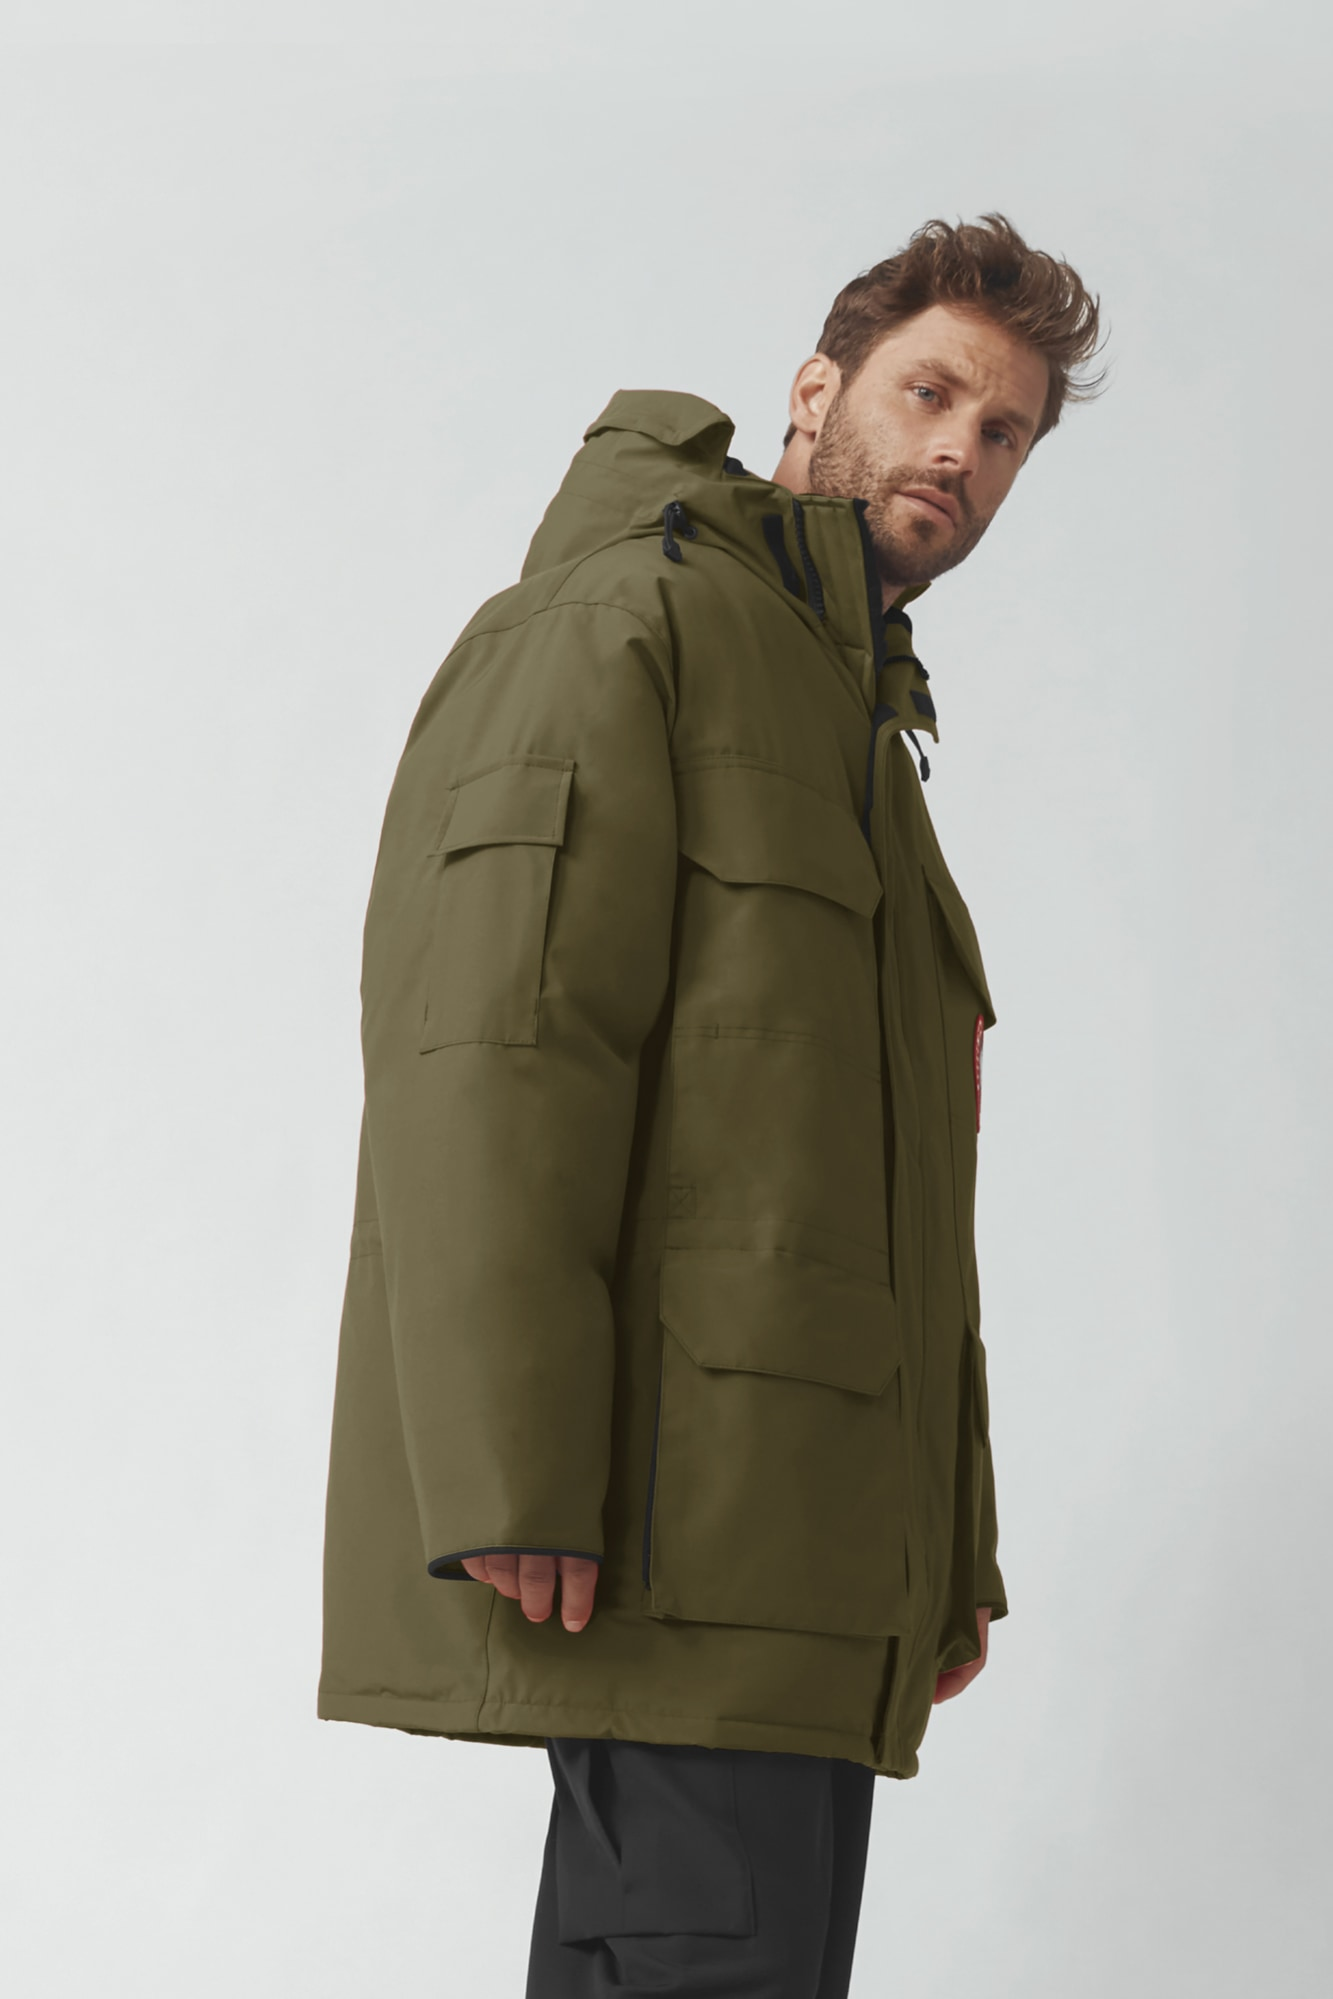 SALE £10 MENS BLACK MILITARY STYLE UTILITY COAT JACKET RRP £49 NOW ONLY £10